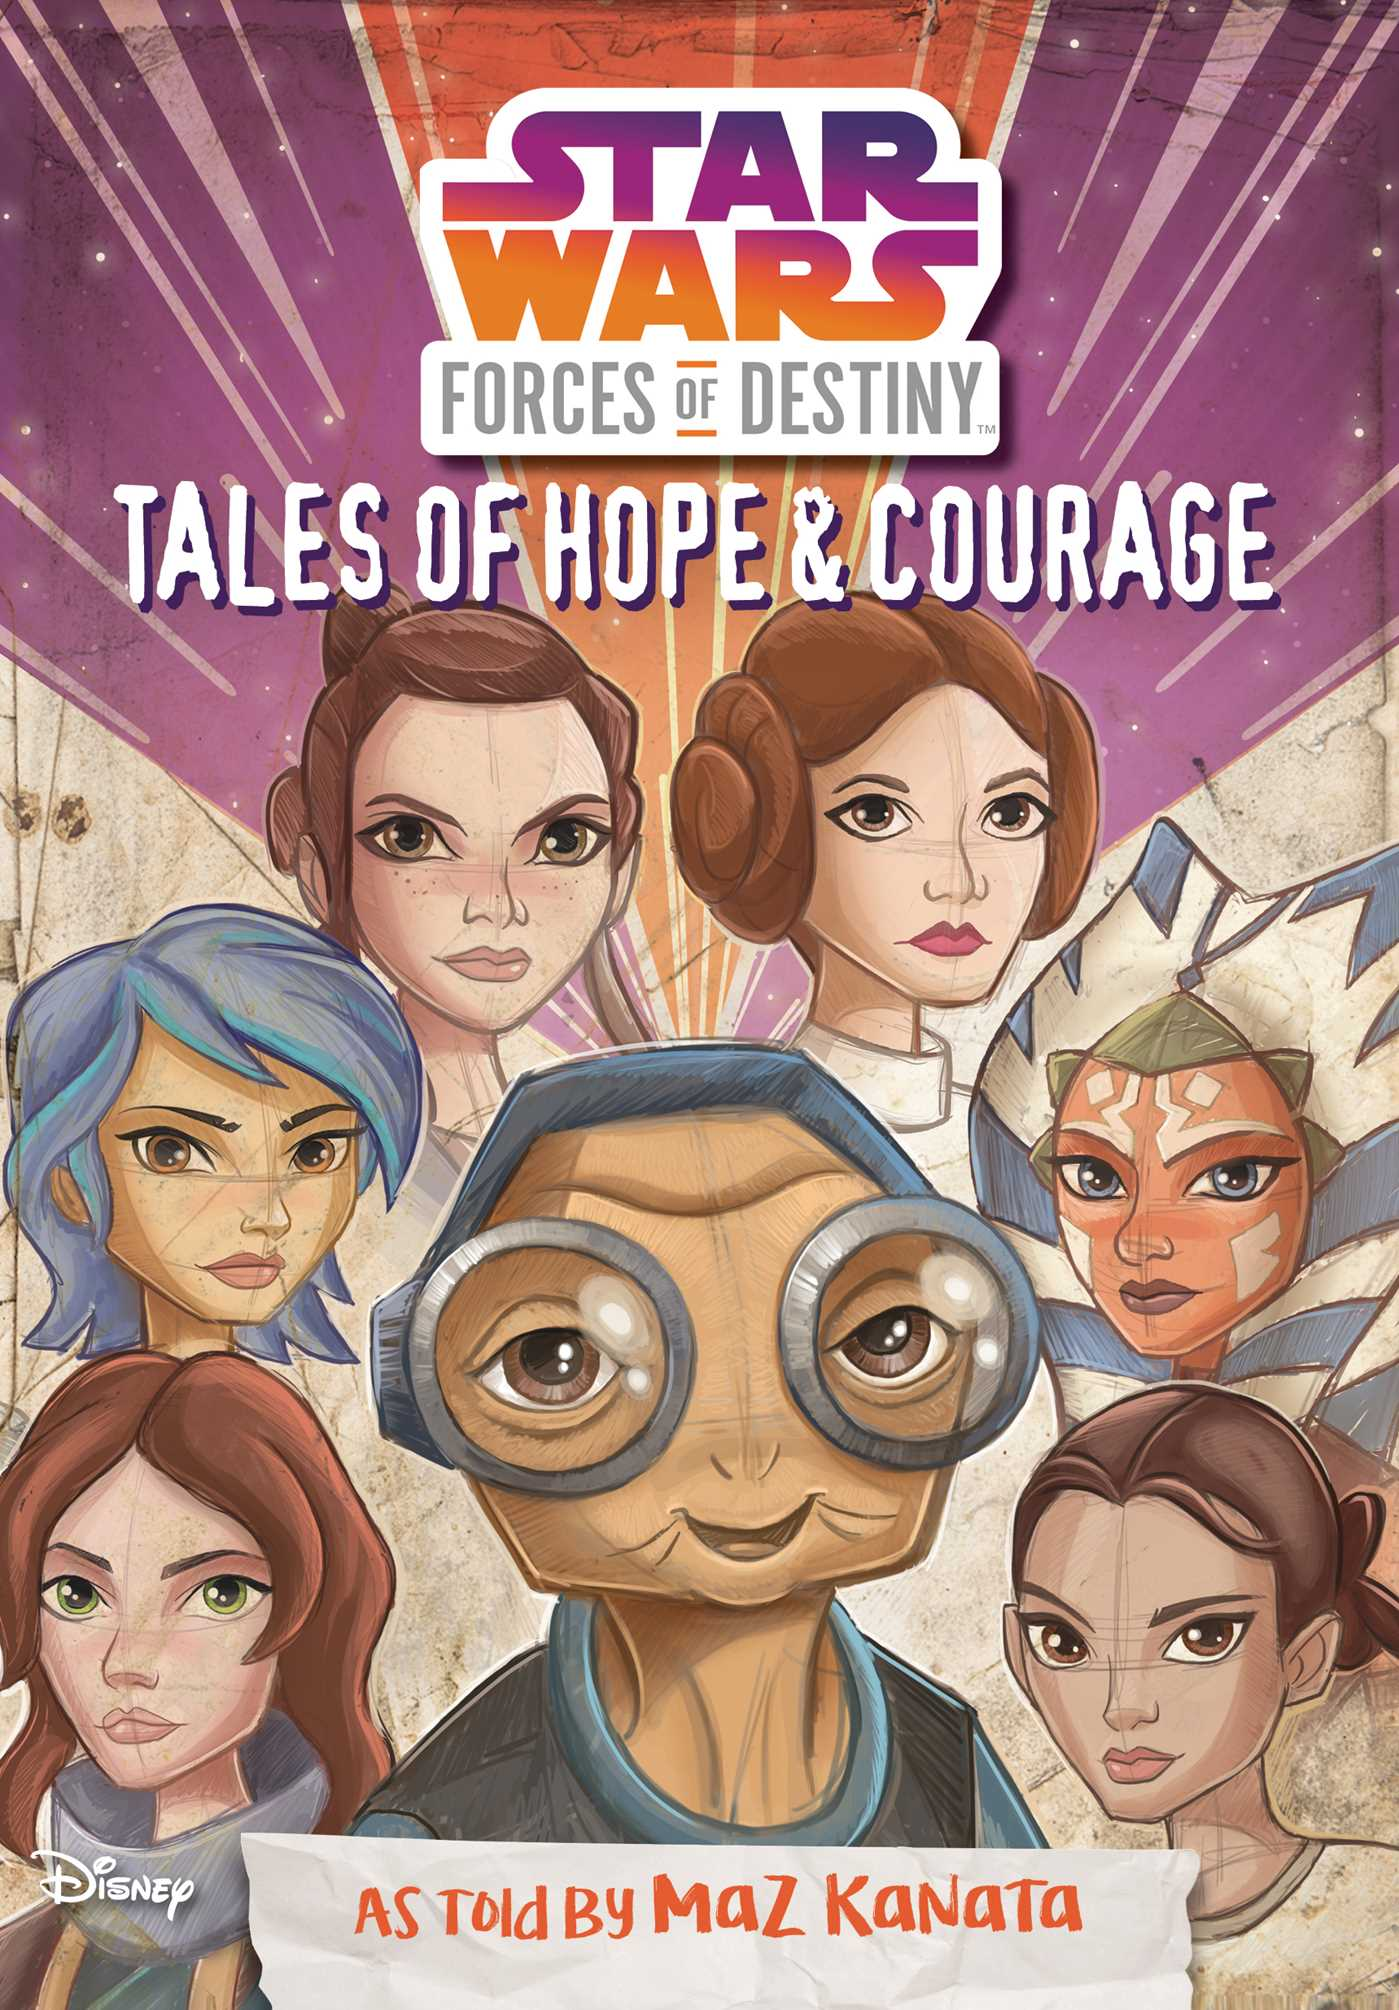 Star wars forces of destiny tales of hope courage 9780794440367 hr